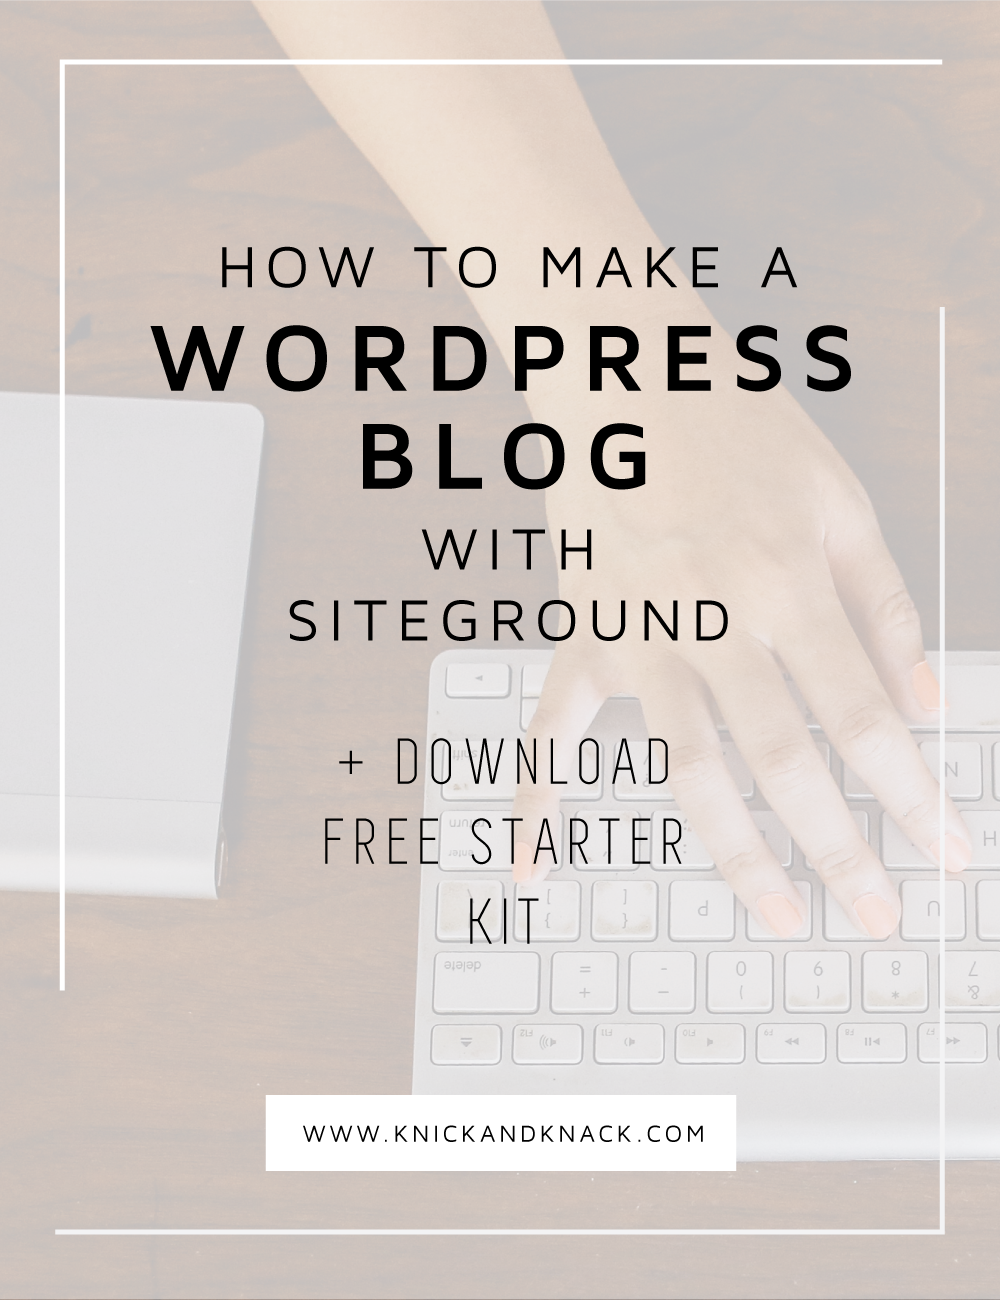 Learn how to make a WordPress blog with Siteground in this post